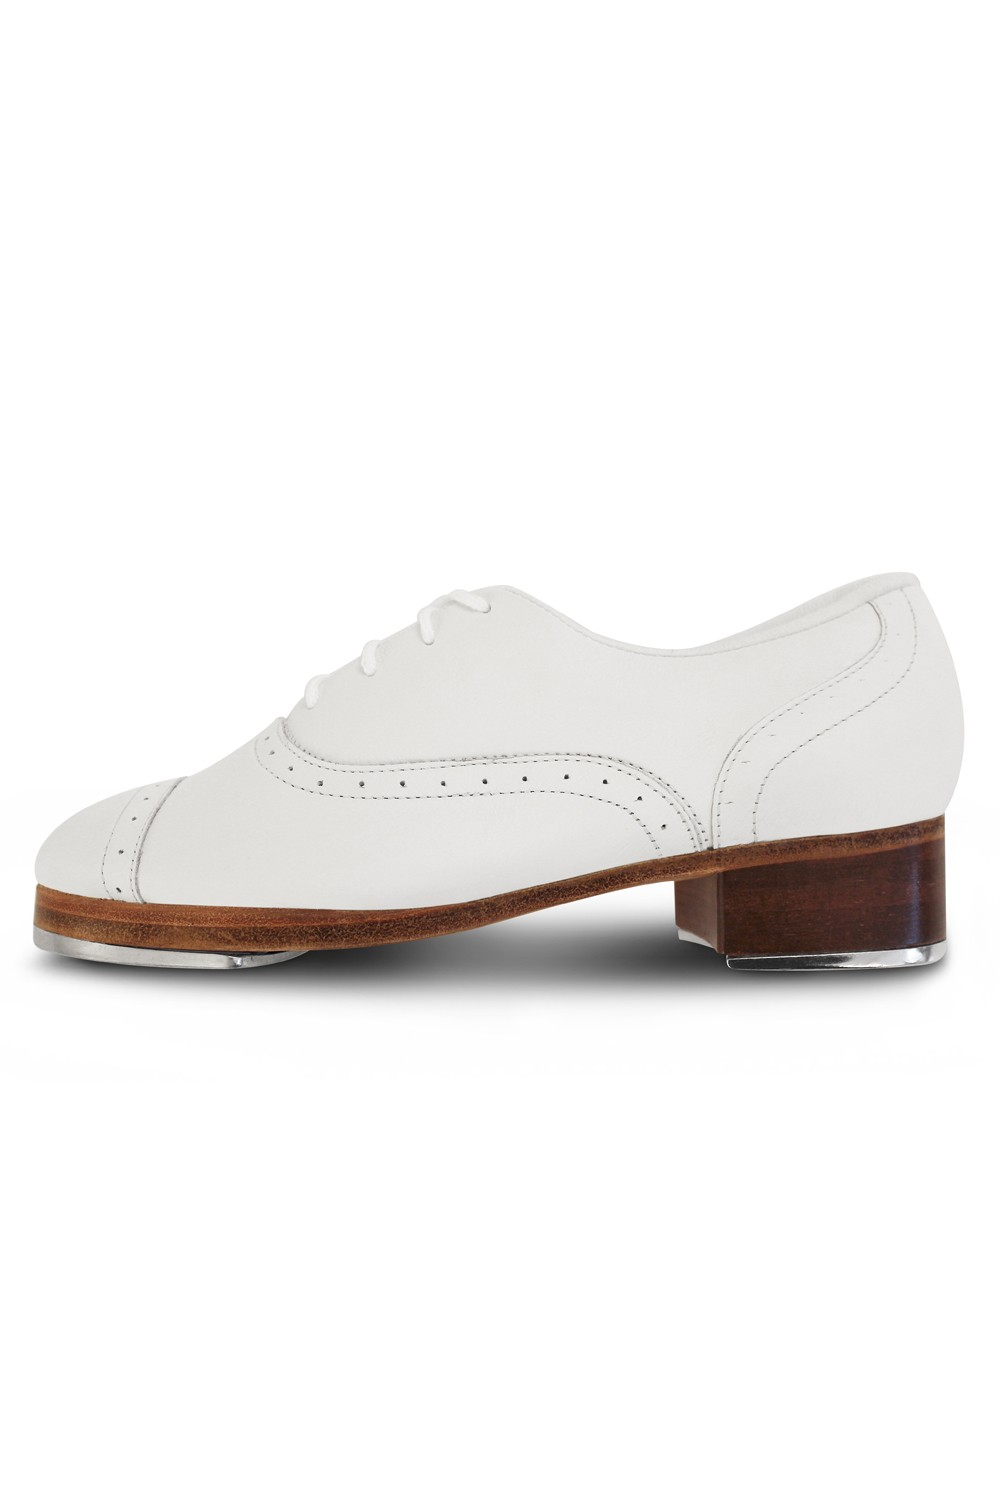 Jason Samuels Smith Women's Tap Shoes